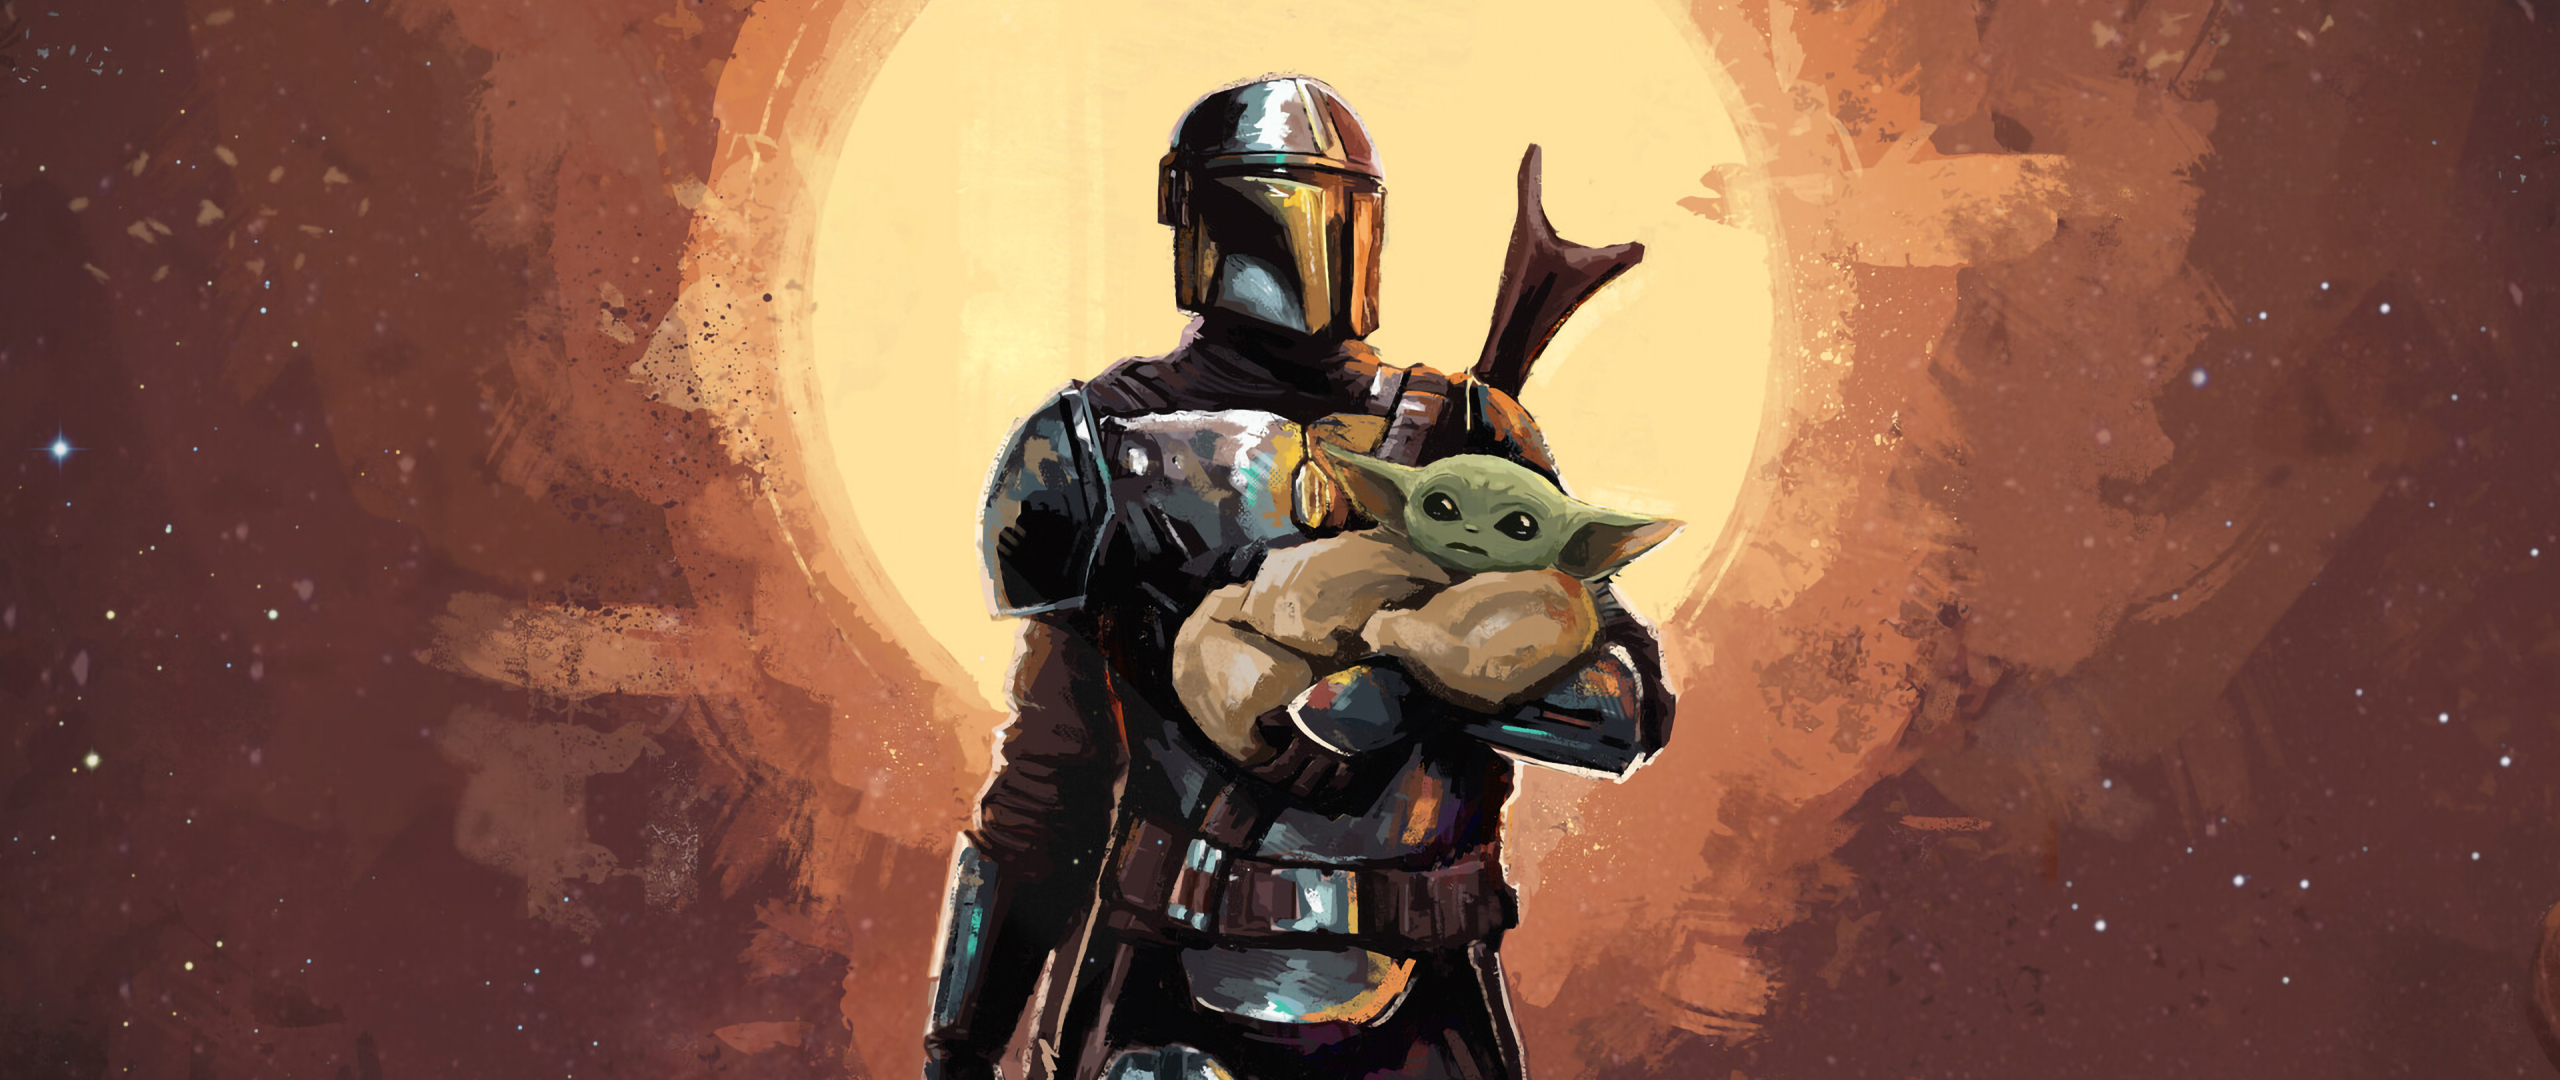 2560x1080 The Mandalorian And Baby Yoda Art 2560x1080 Resolution